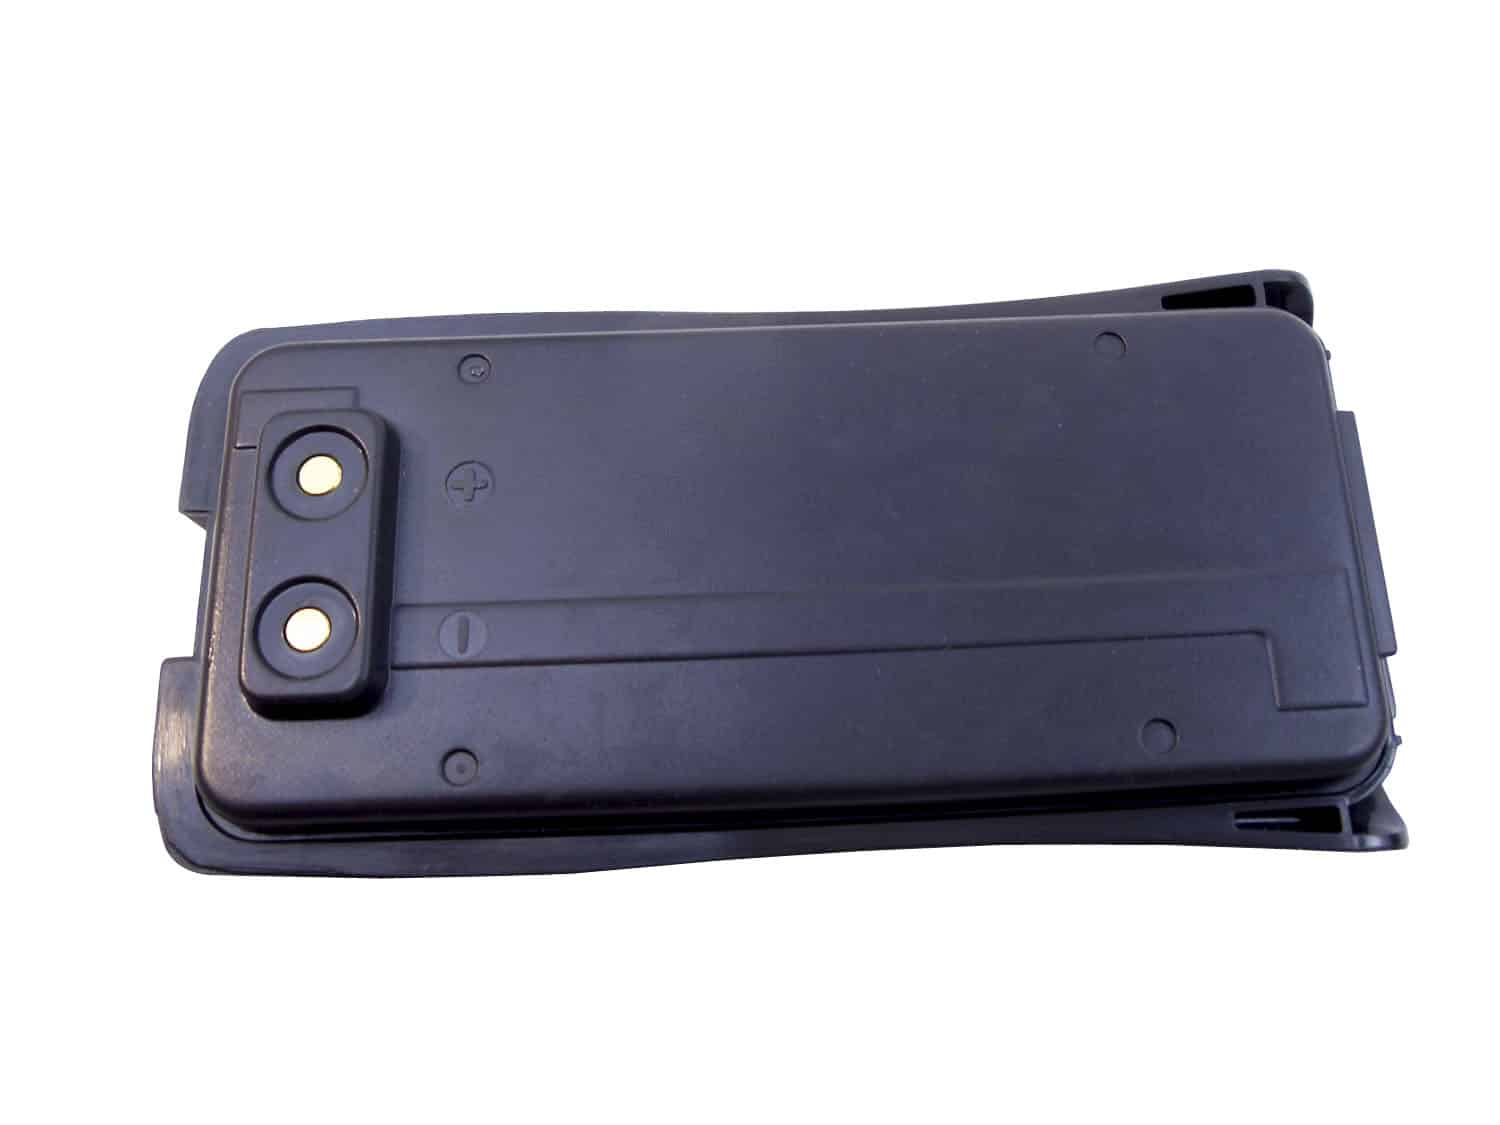 BHATL250X - Uniden Replacement Battery Case for the ATLANTIS250